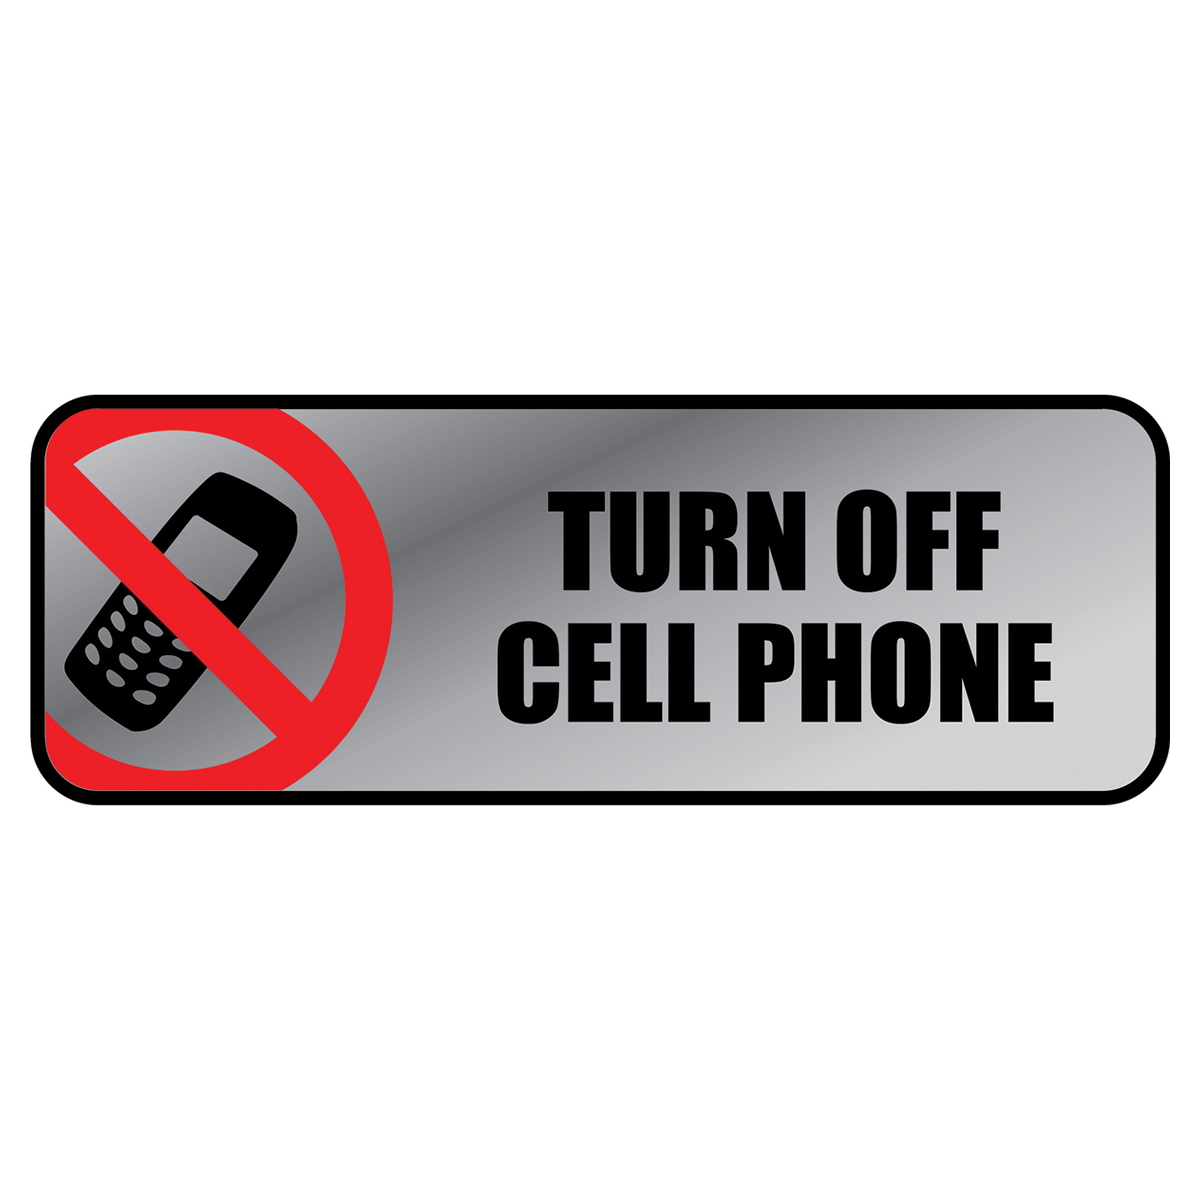 TURN OFF CELL PHONE - Metal Sign - 098211